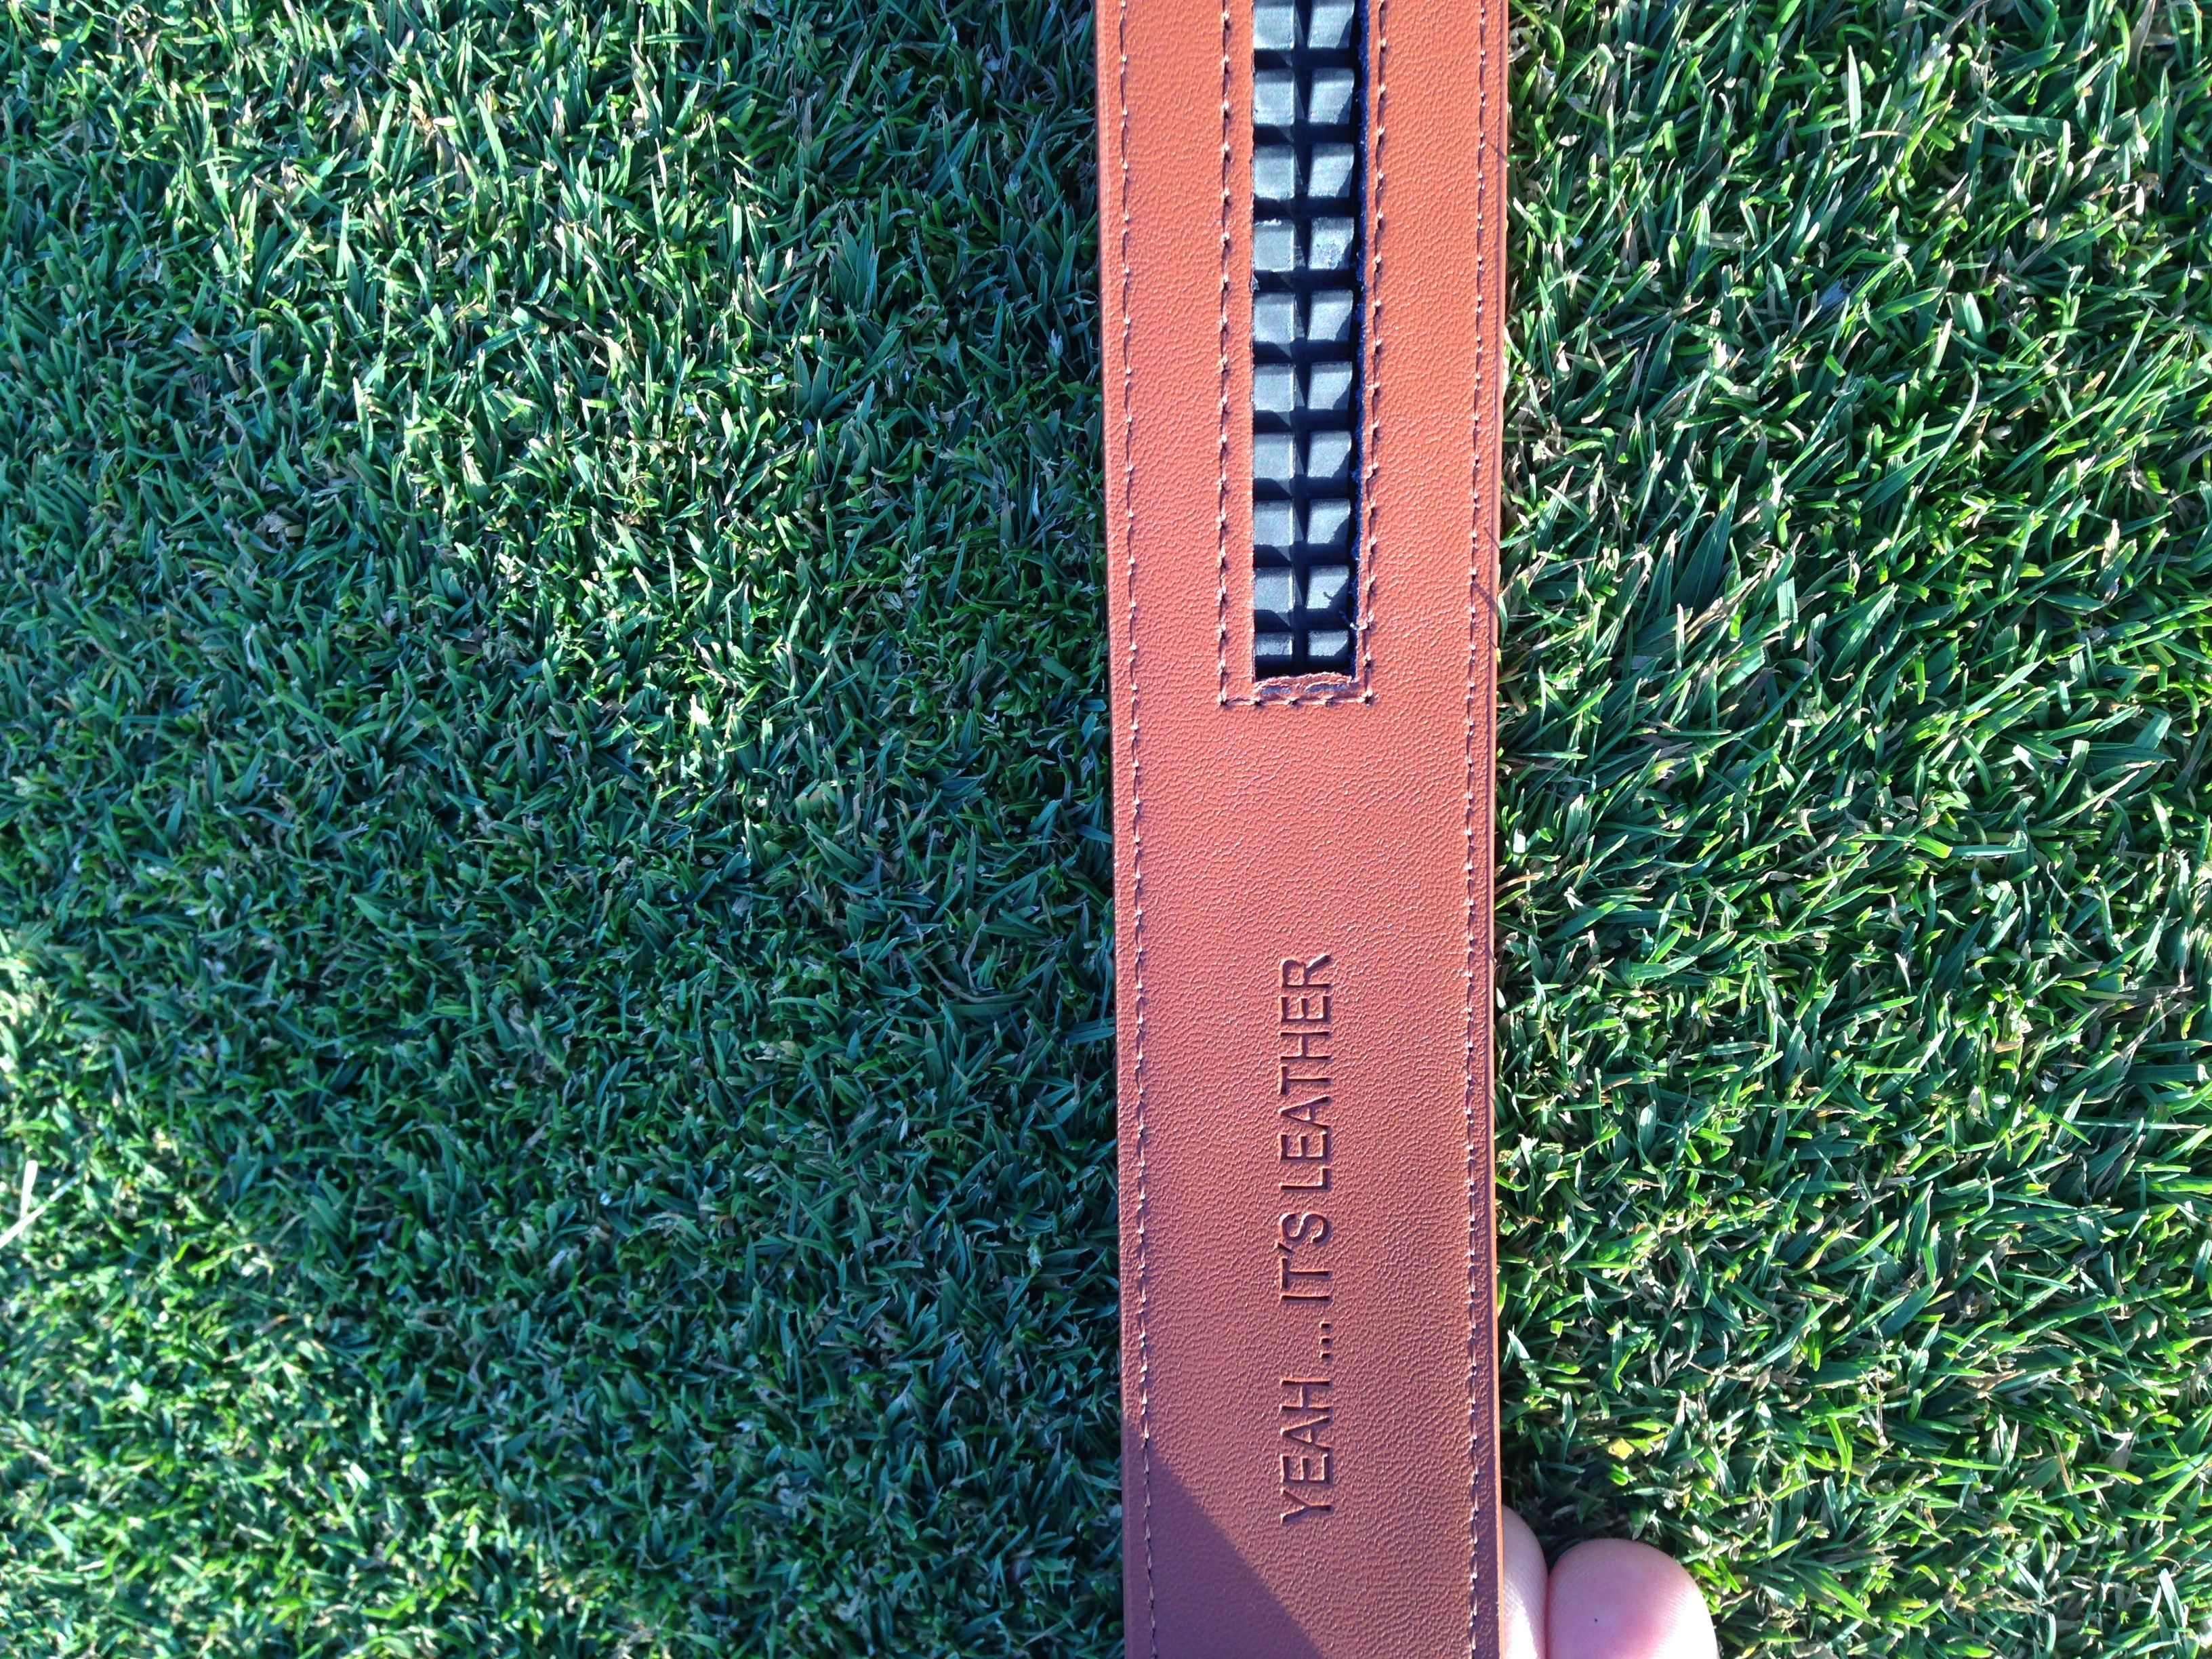 Mission Belt Steel Golf by Josh hirst pga professional